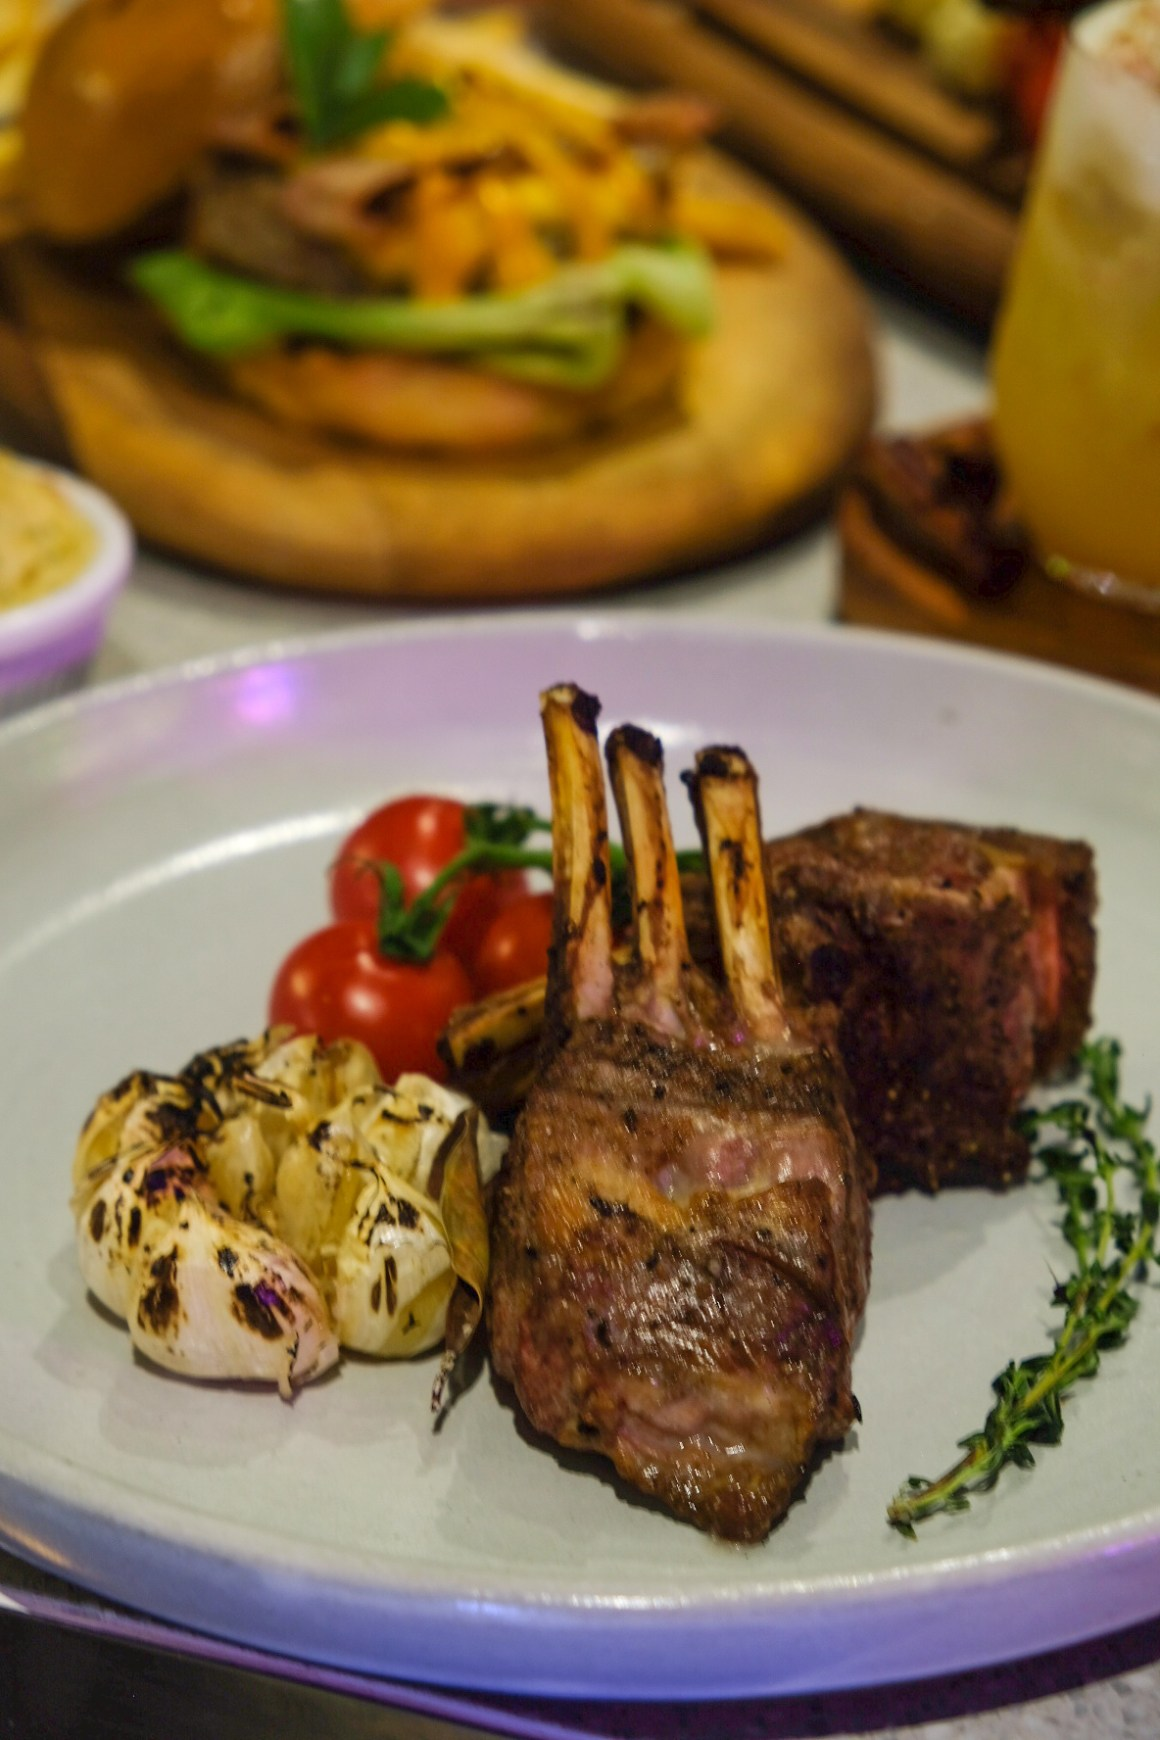 Rumours Bar & Grill @ Jewel Changi, Second Outlet - Australian Baby Lamb Chops with Garlic Confit ($45.80)